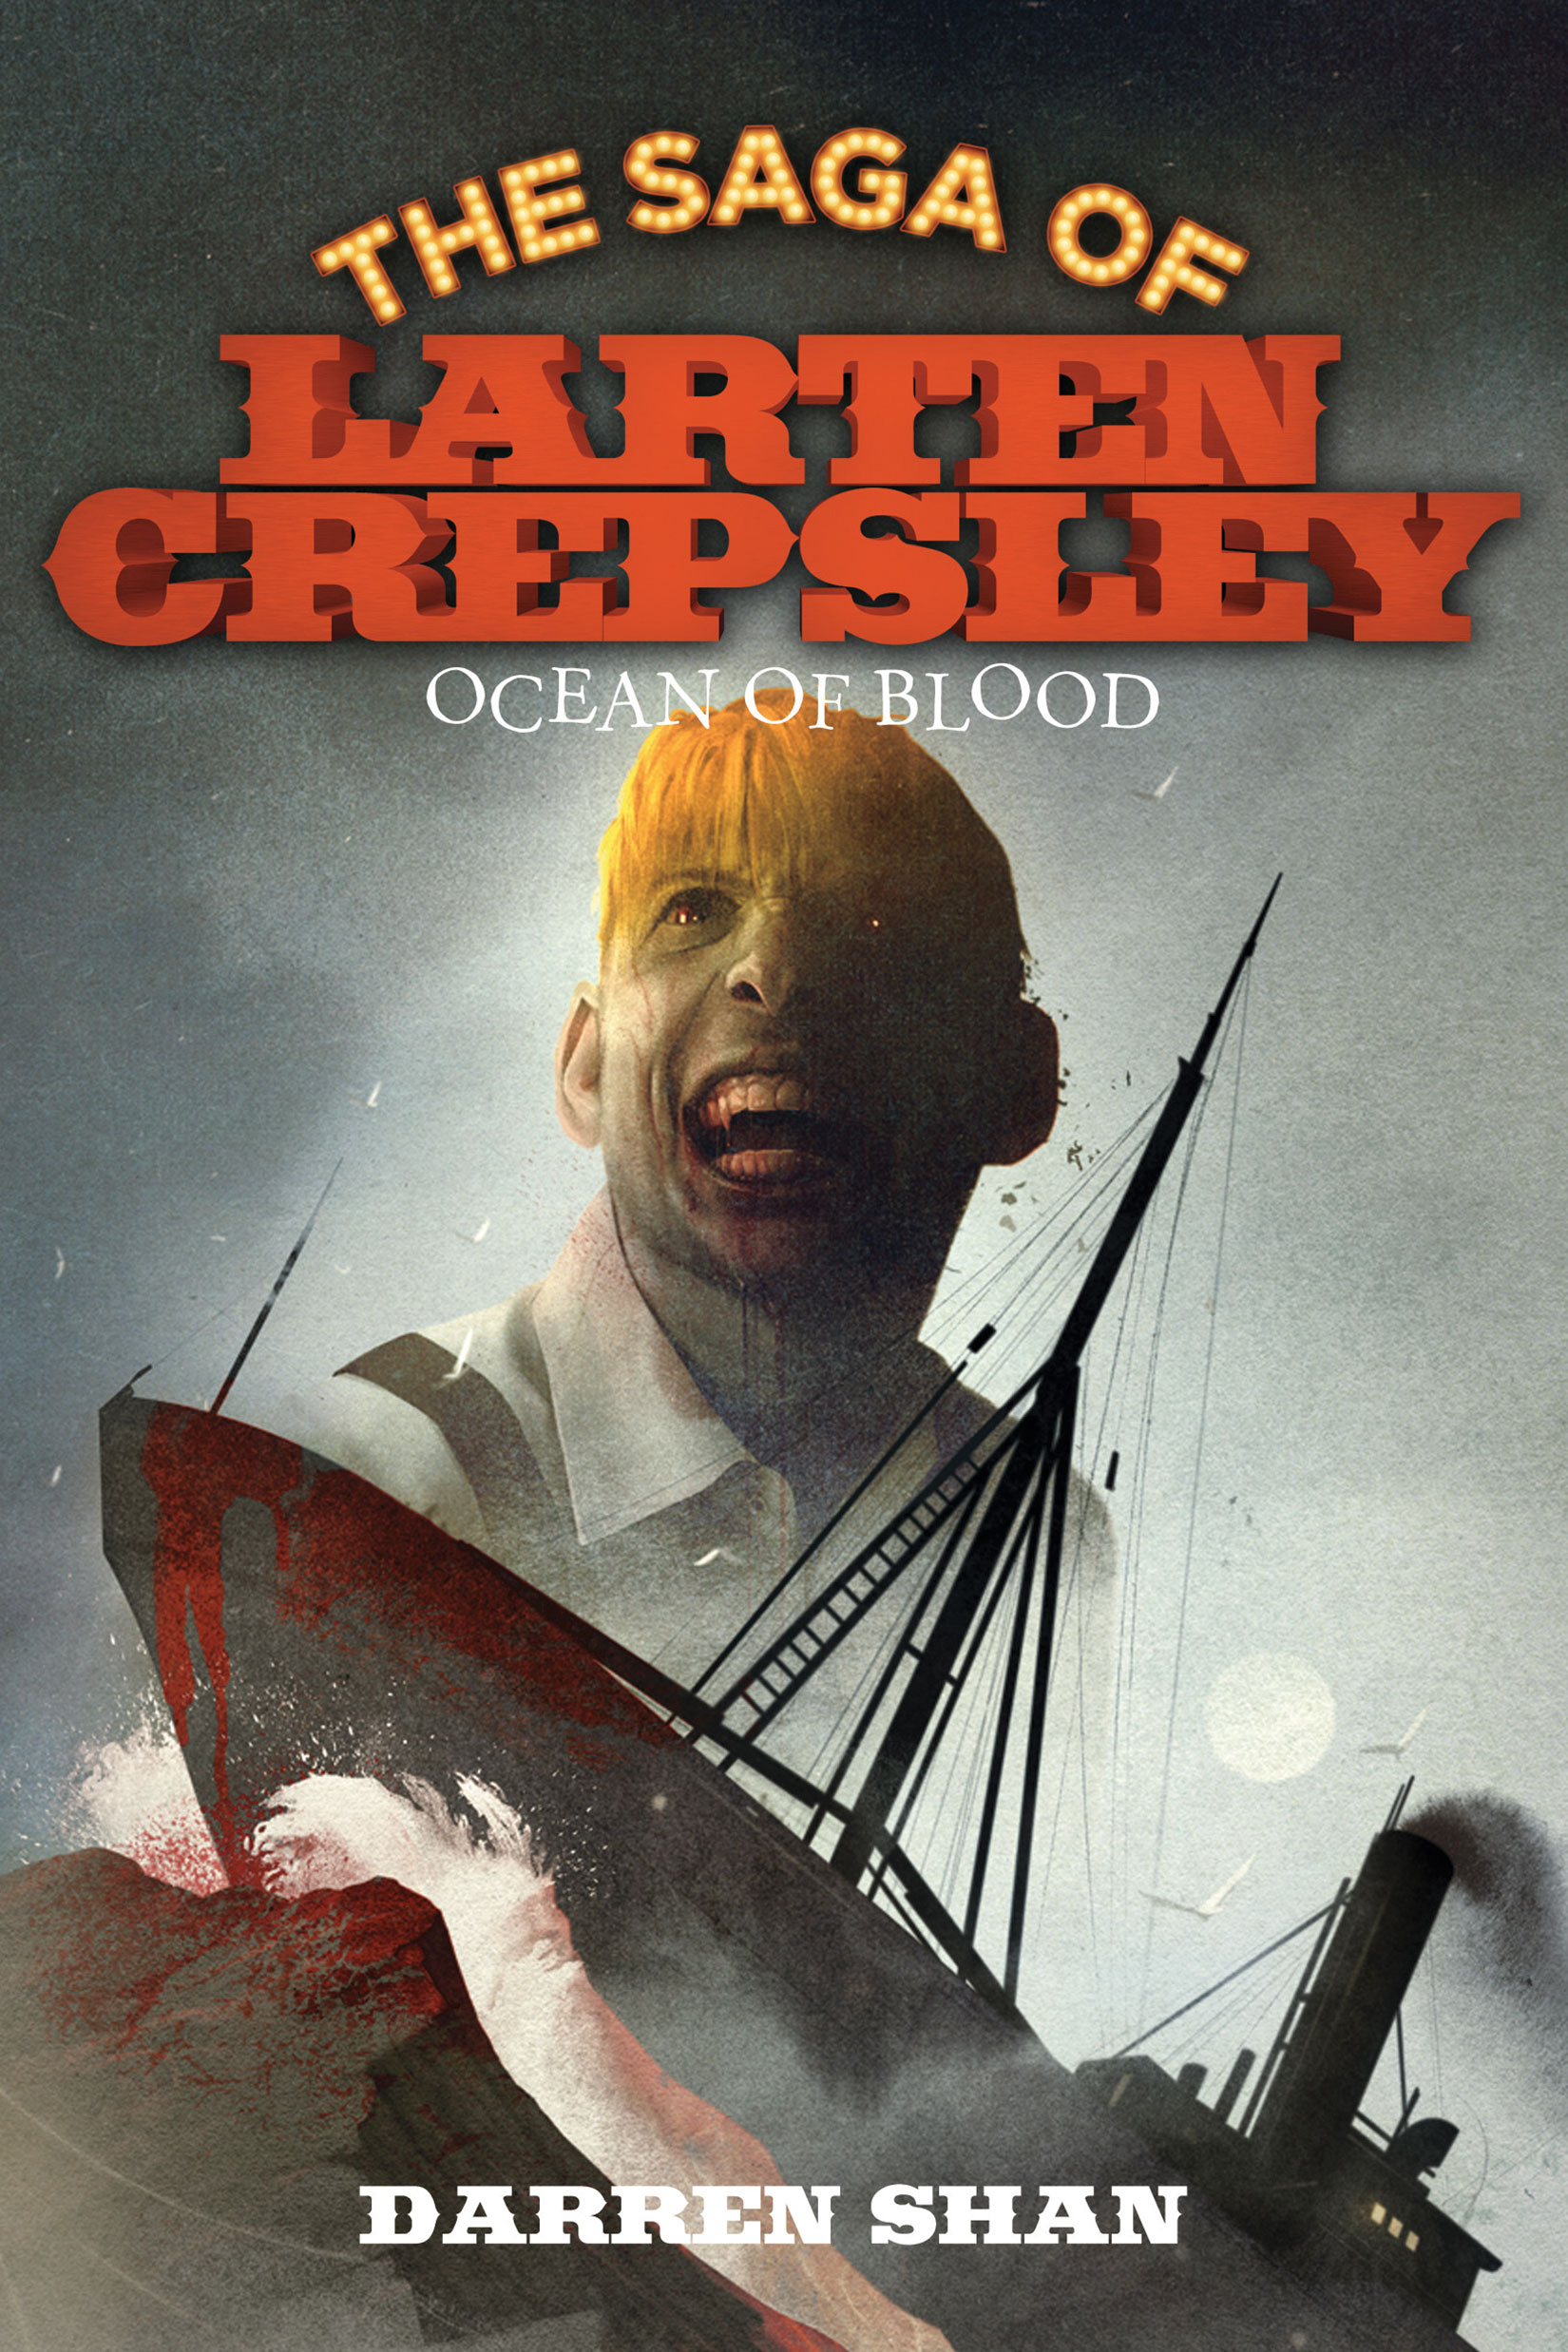 The Saga of Larten Crepsley: Ocean of Blood by Darren Shan Designed by Ben Mautner for Little, Brown Logo & Identity by Ben Mautner. Illustrated by Sam Weber.